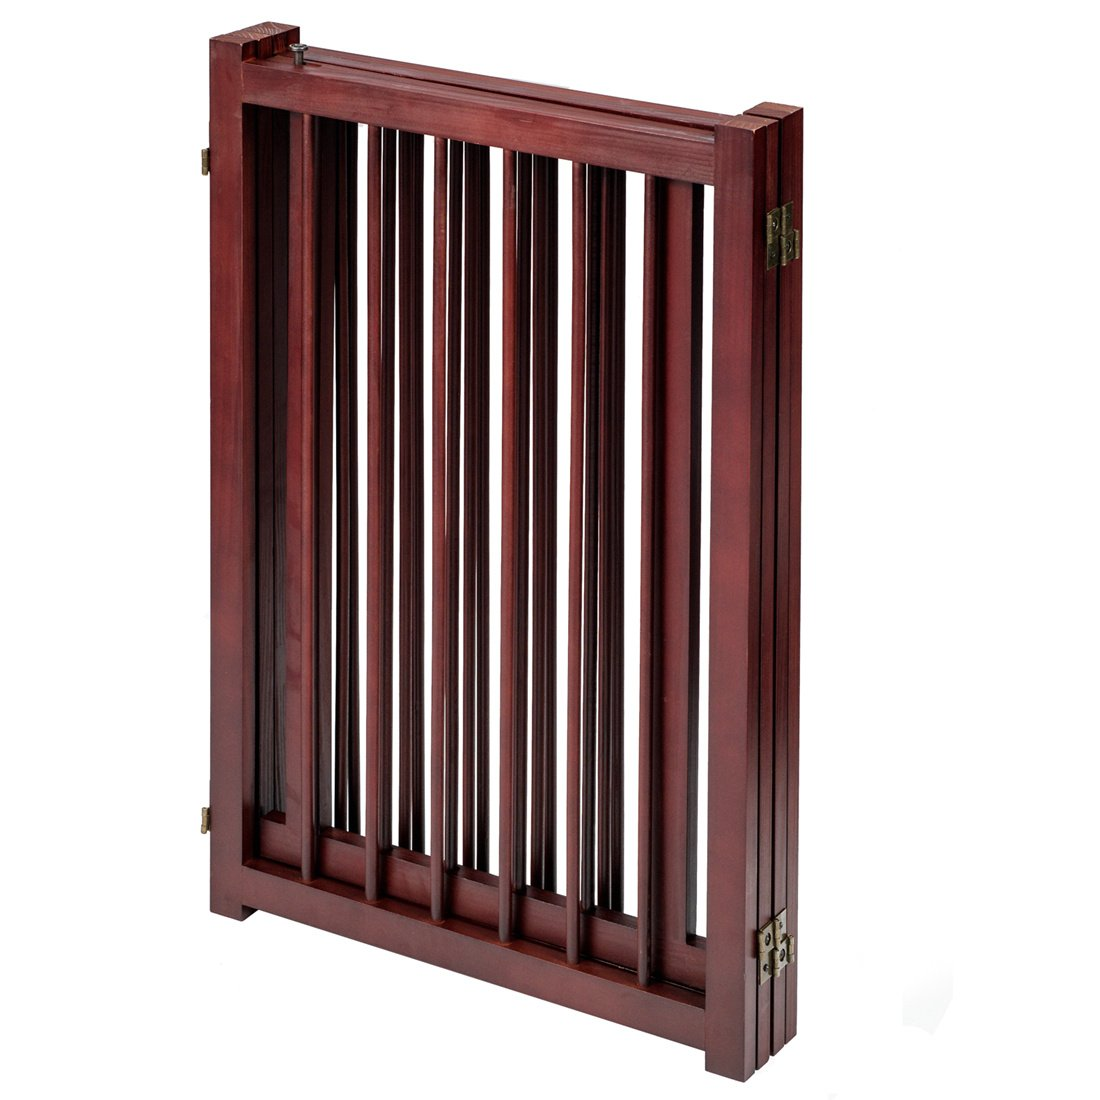 GOOD LIFE 81 Inch Wooden Pet Gate with Walk Through Door Adjustable Freestanding Fence Folding Dog Gate 4 Panel Coffee Color PET343 by GOOD LIFE USA (Image #5)